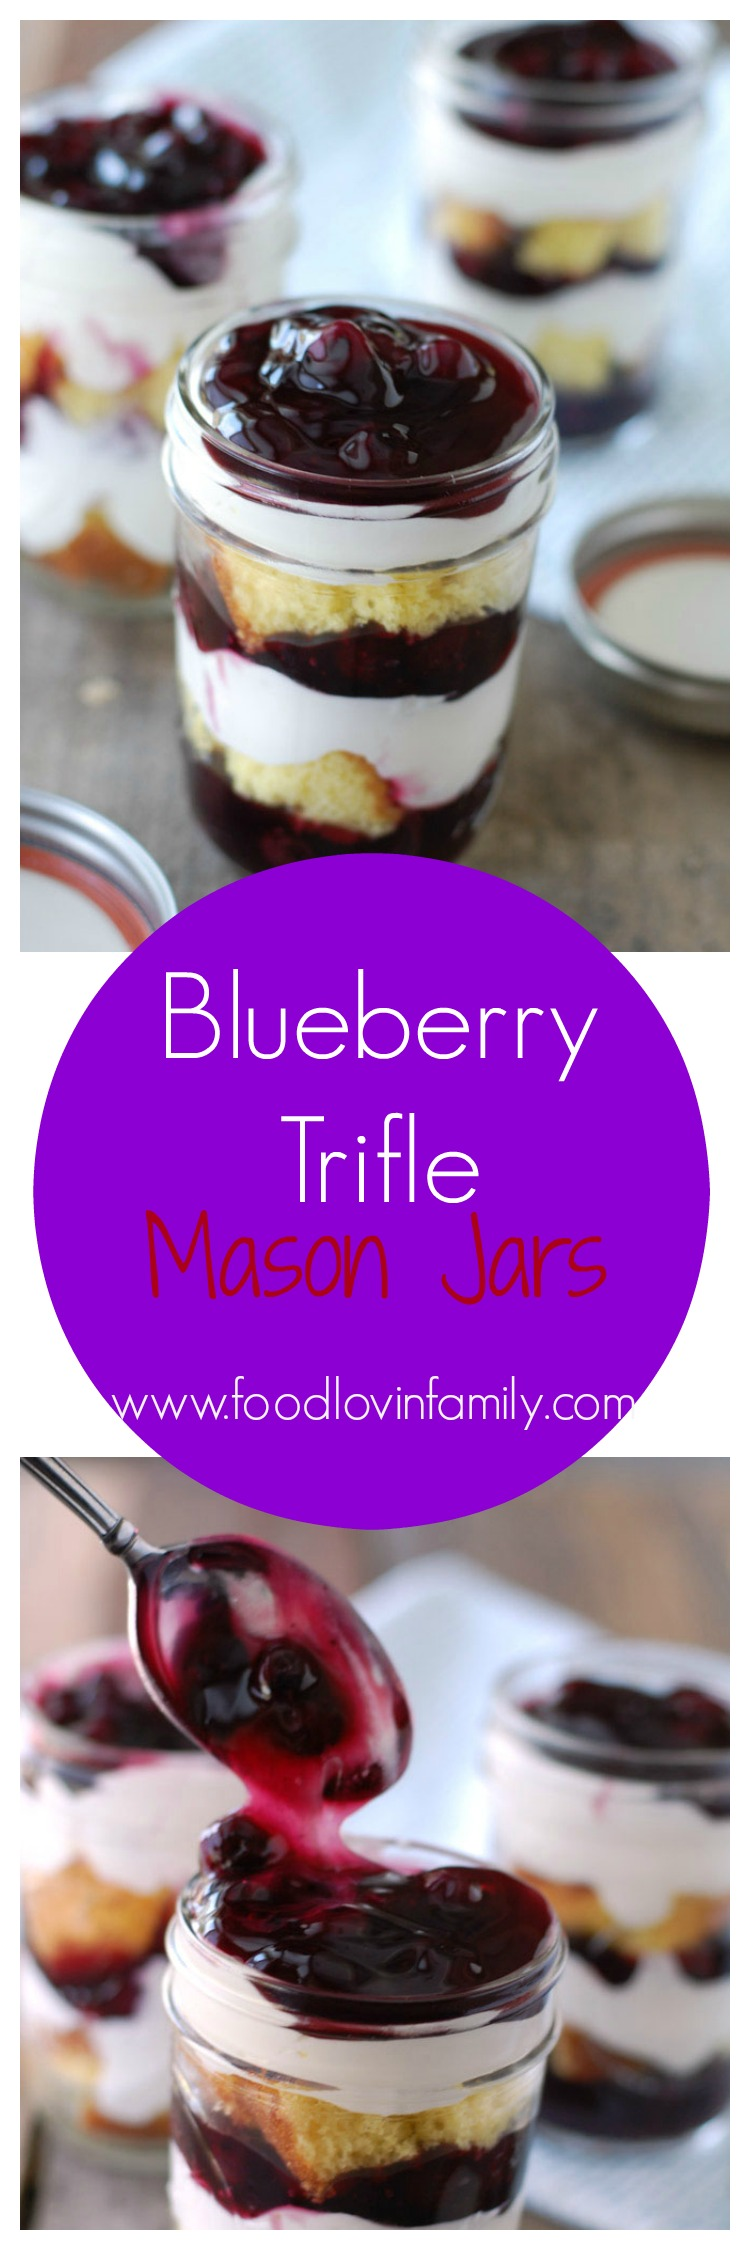 Blueberry Trifle layers of lemon cake, blueberry pie filling, and cream are assembled in Mason jars to make a delicious and portable dessert.